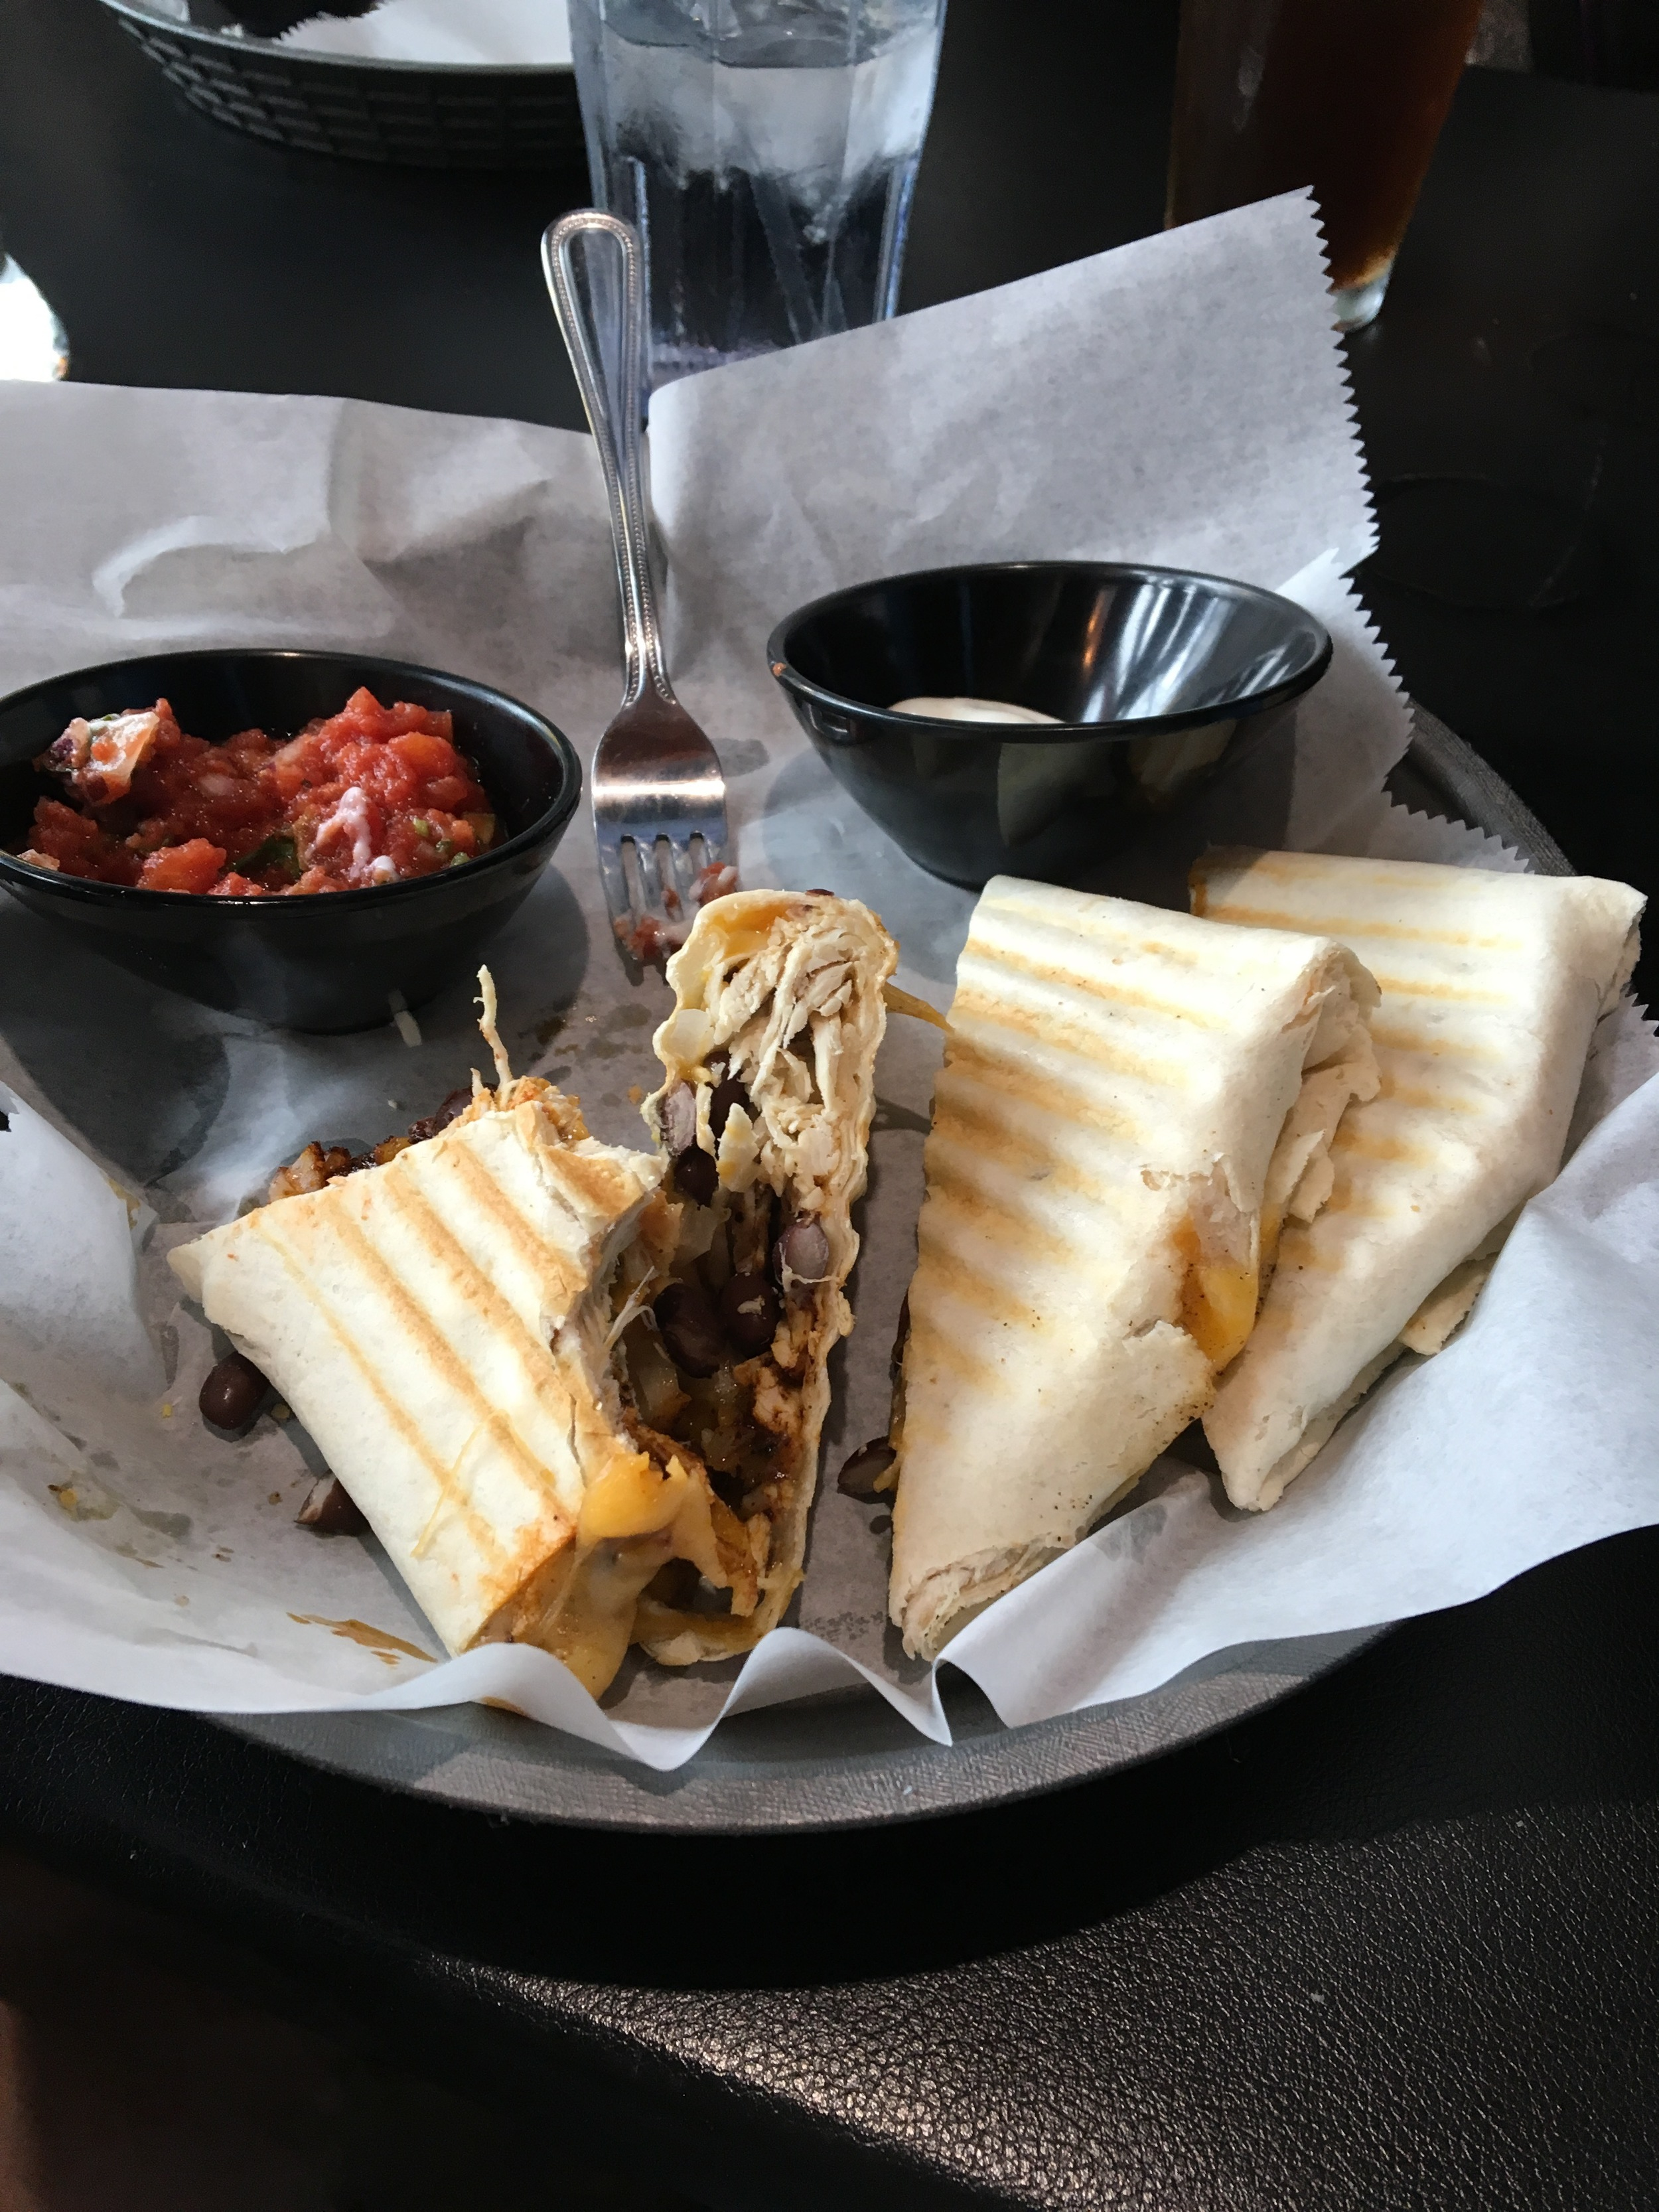 Chilly Water Brewing Company: Chicken Quesadilla. (I started eating this before I remembered to take a picture :( I was hungry!) OMG this is so one of my favorite quesadillas. It was so full of flavor and their salsa is really good! Highly recommend it paired with their beers!